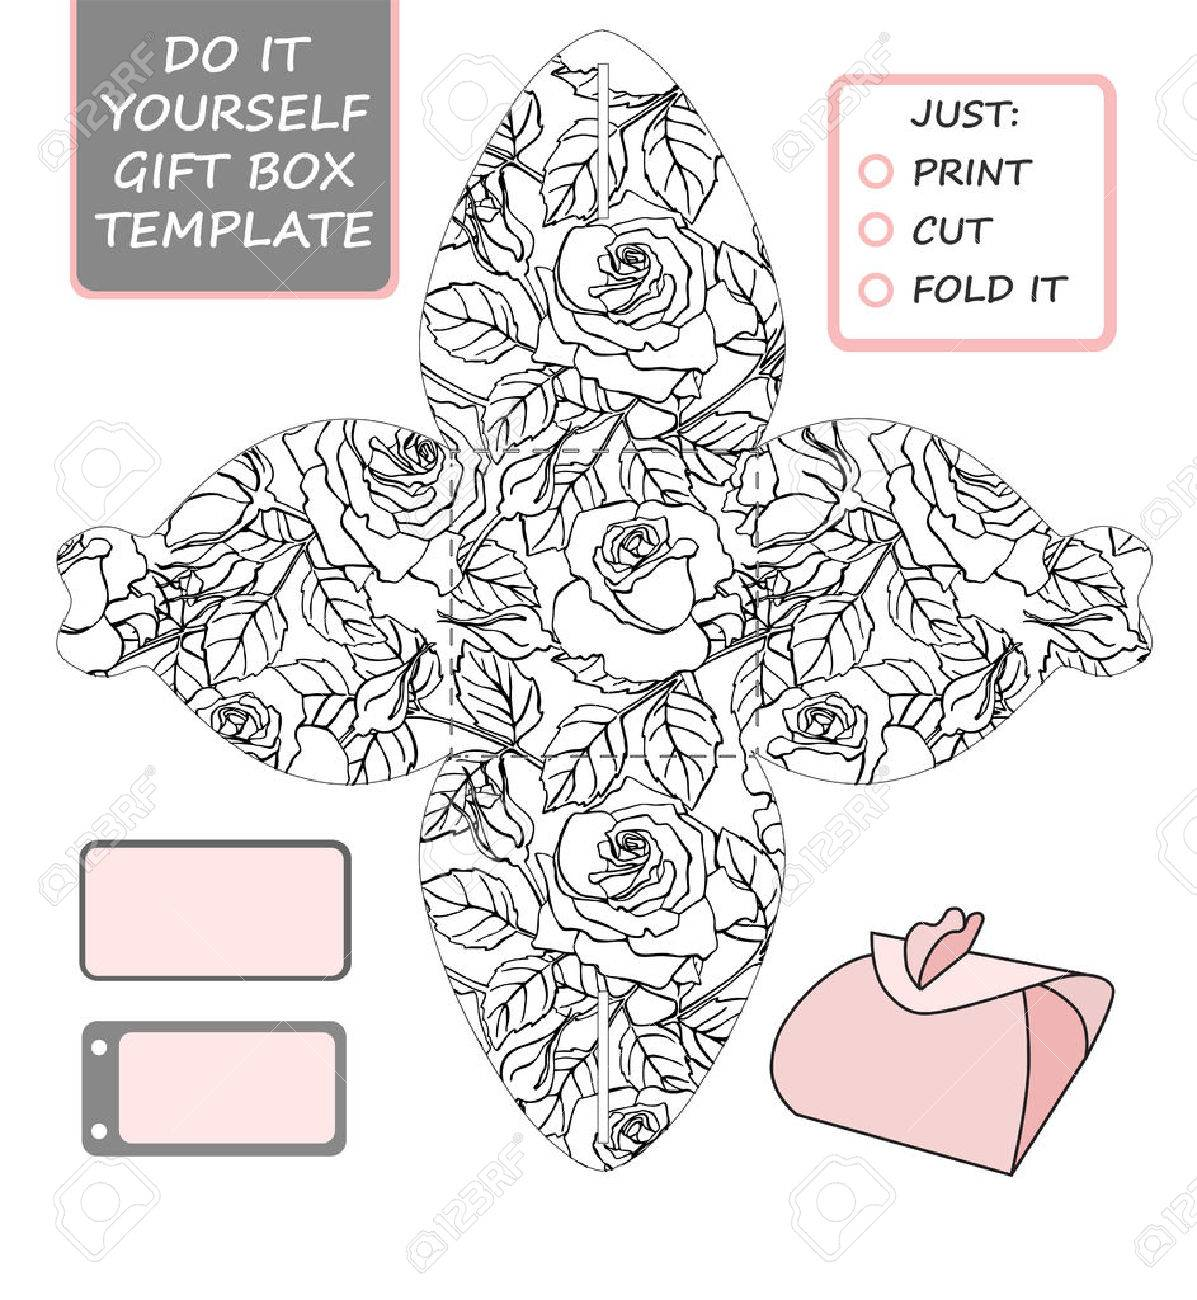 Favor gift box die cut box template with rose pattern great favor gift box die cut box template with rose pattern great for birthday solutioingenieria Images